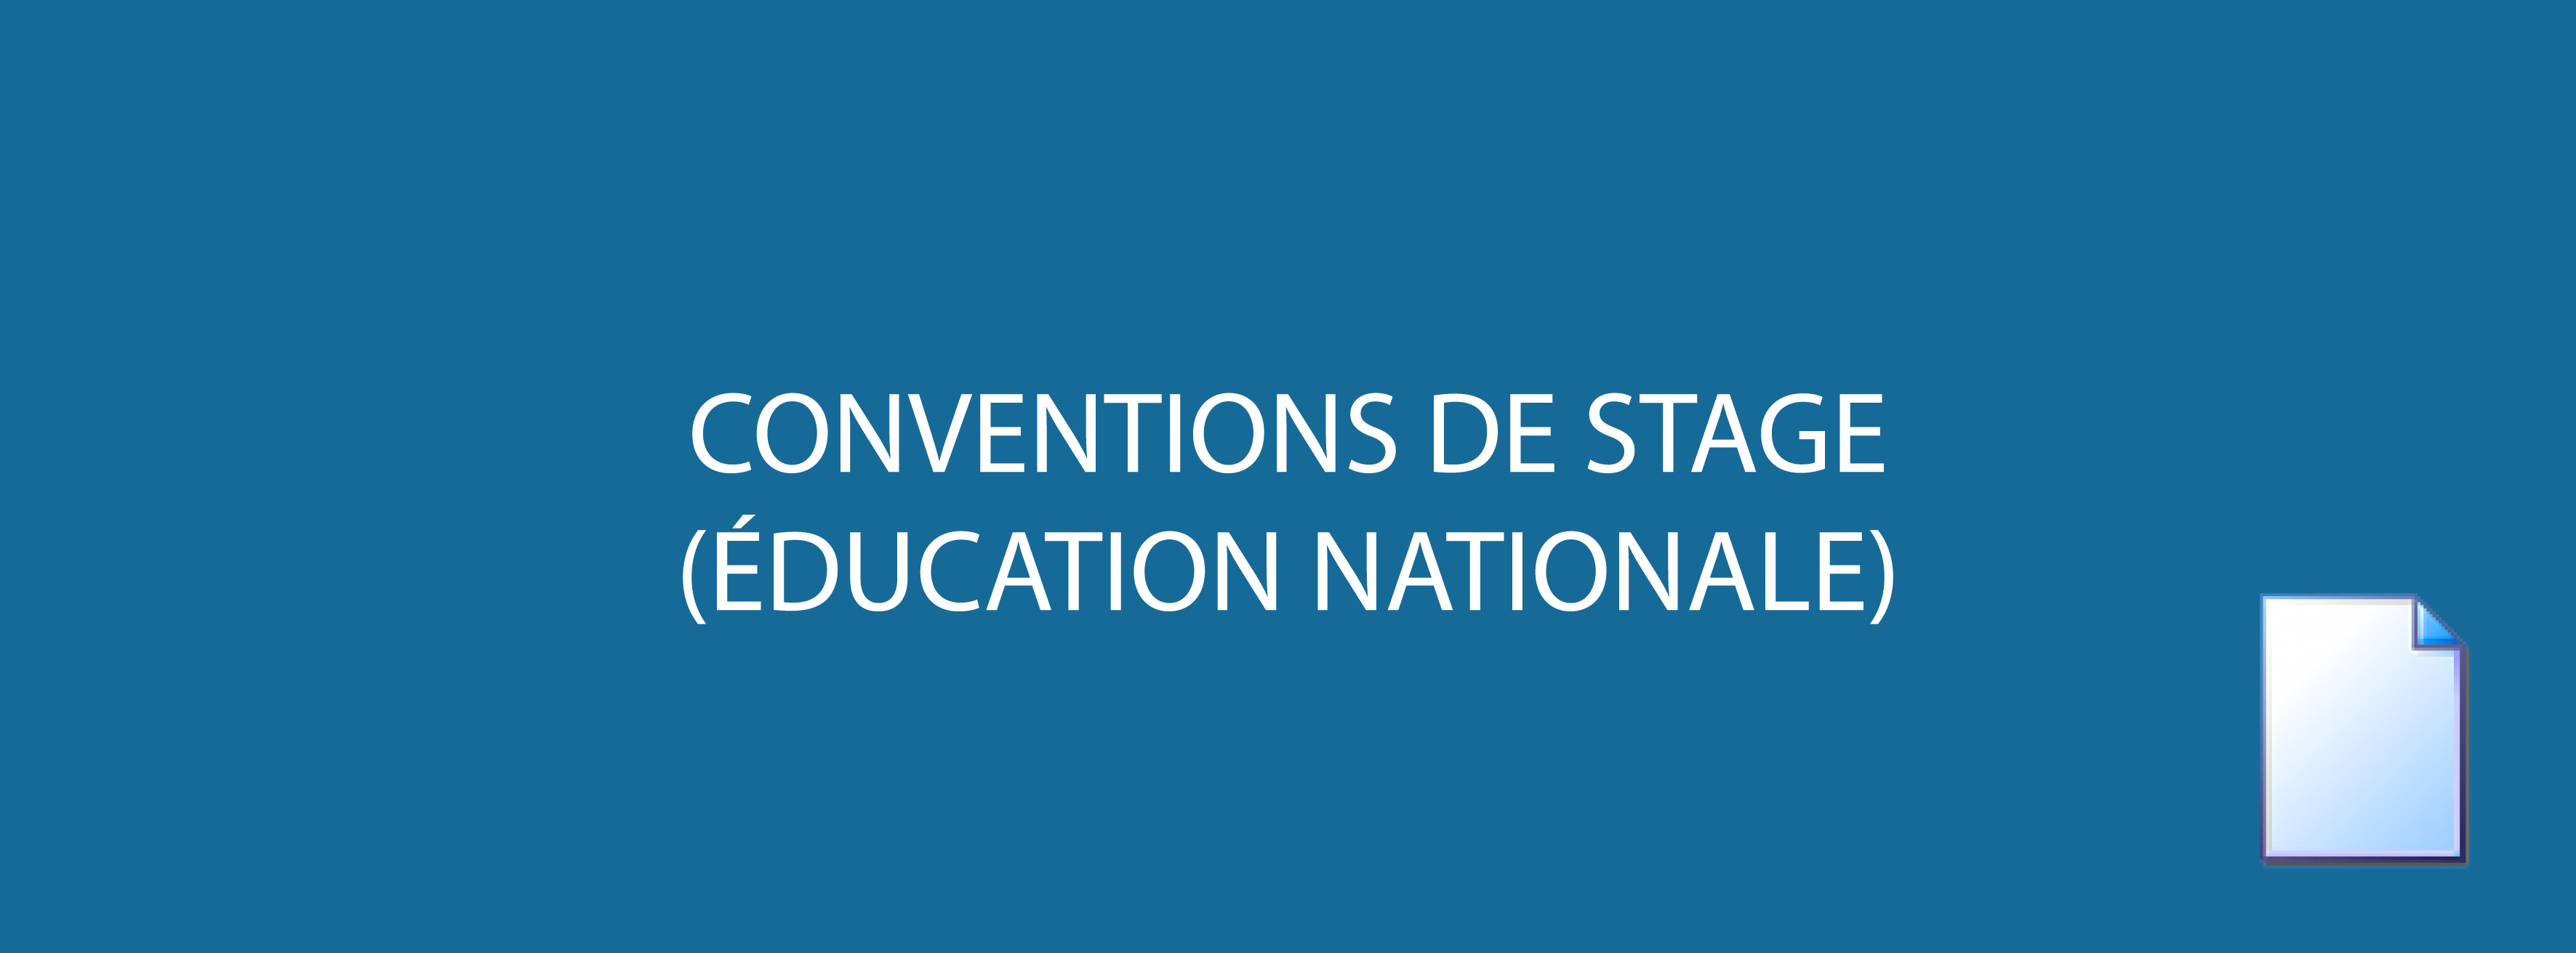 Conventions de stage - Éducation Nationale